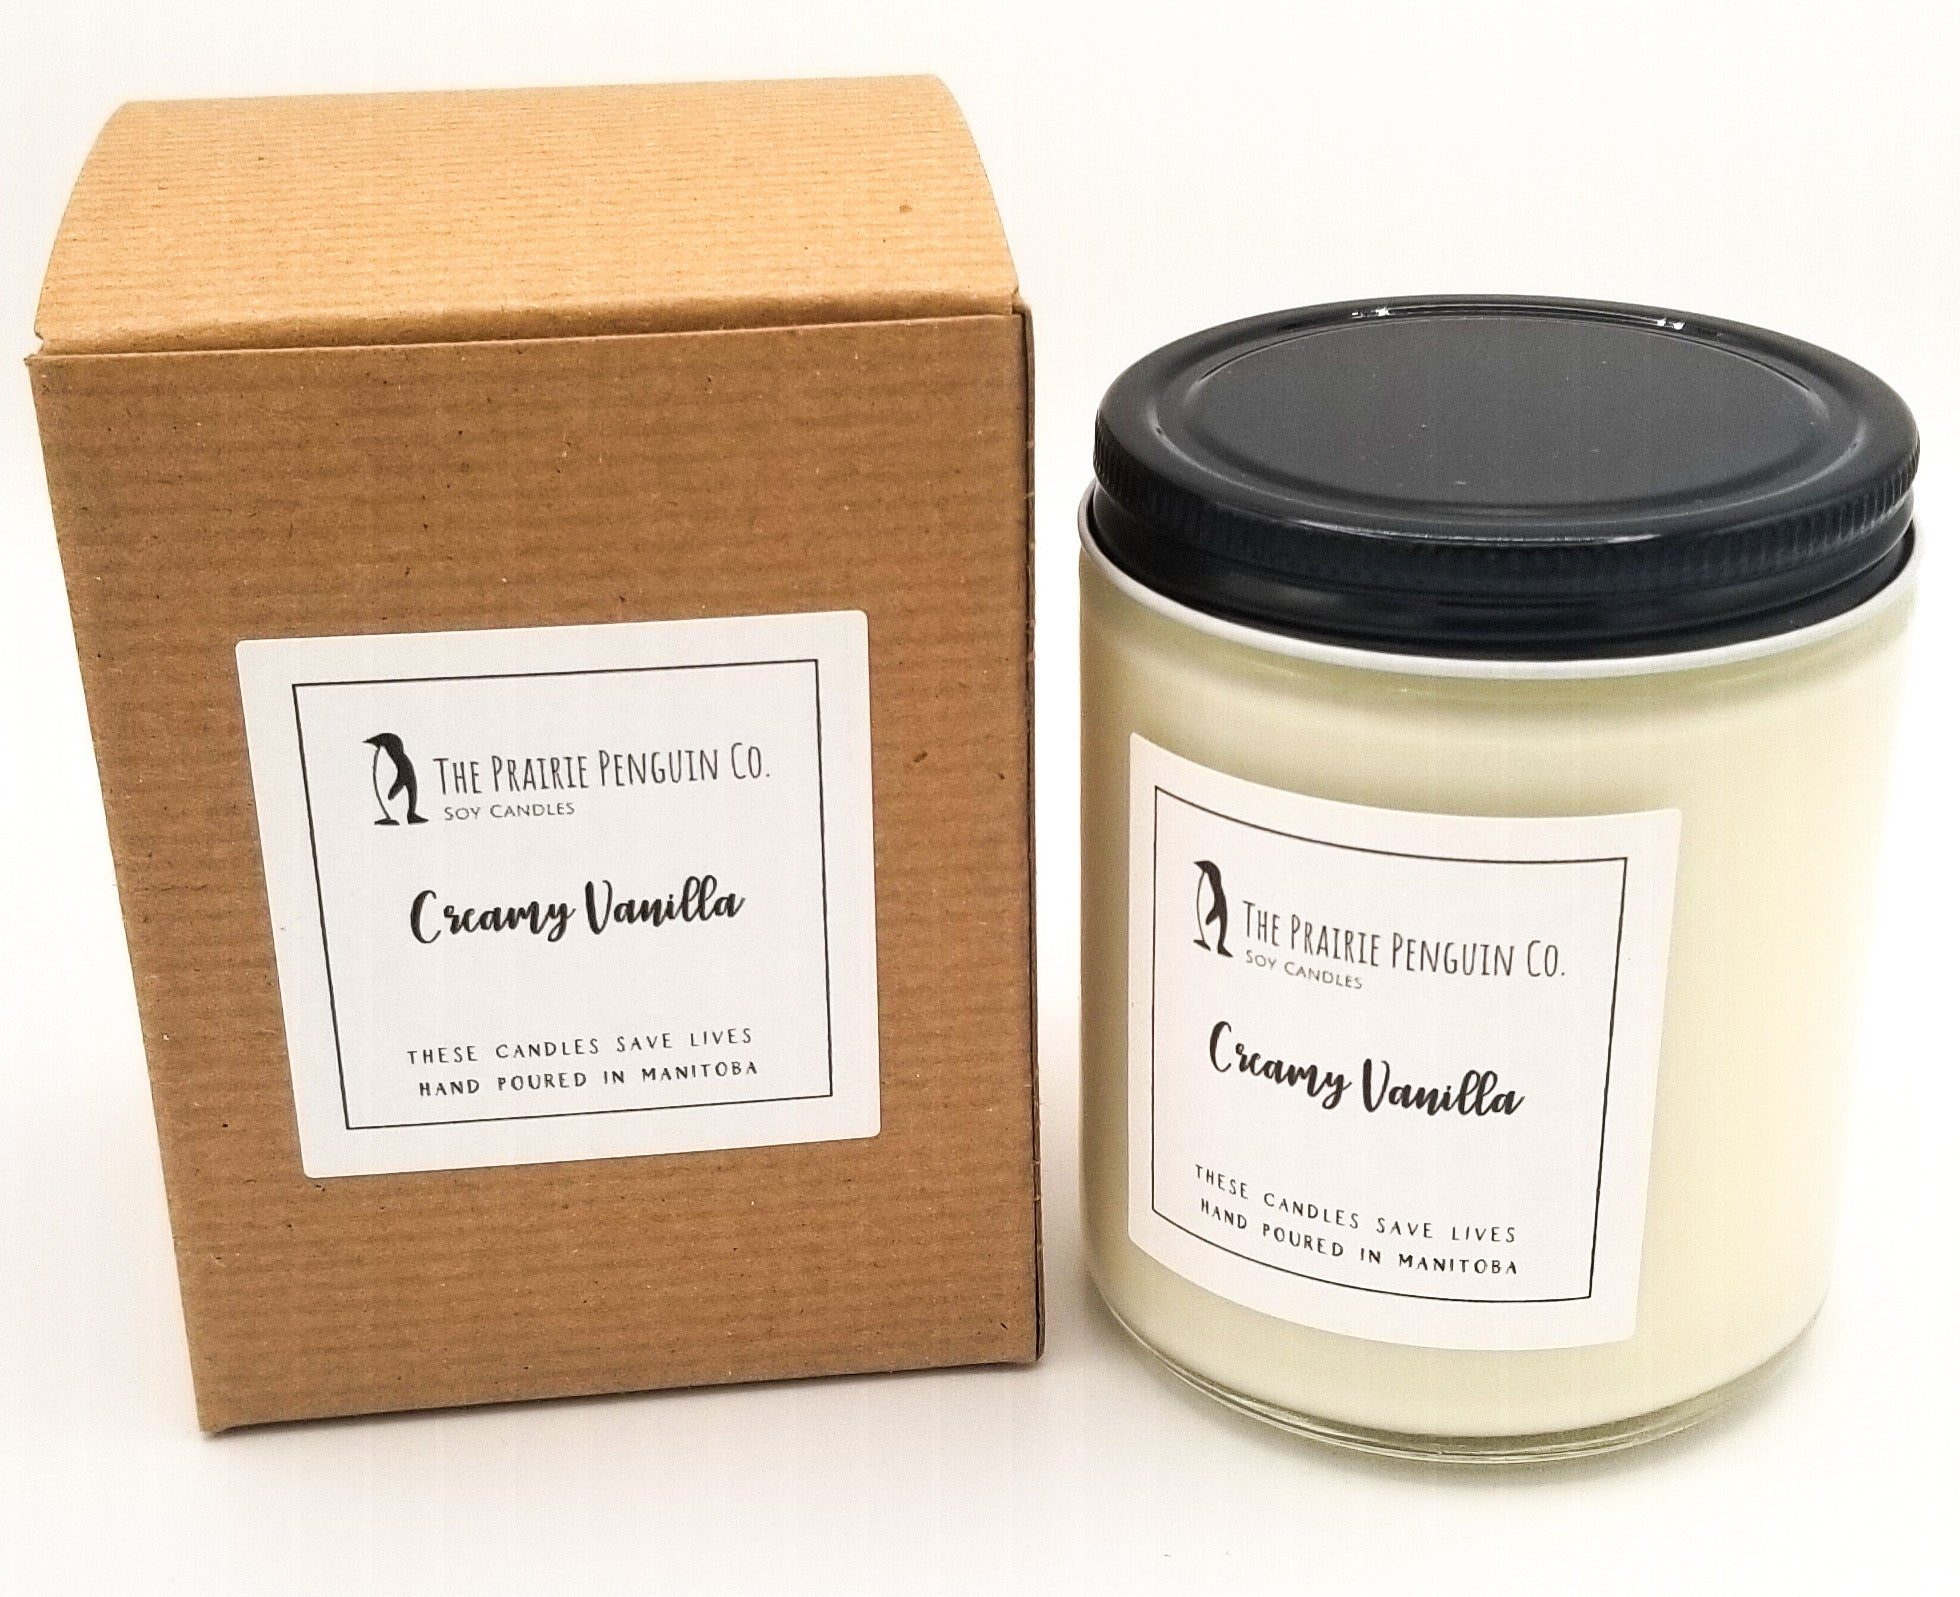 Creamy Vanilla Candle 8oz by The Prairie Penguin